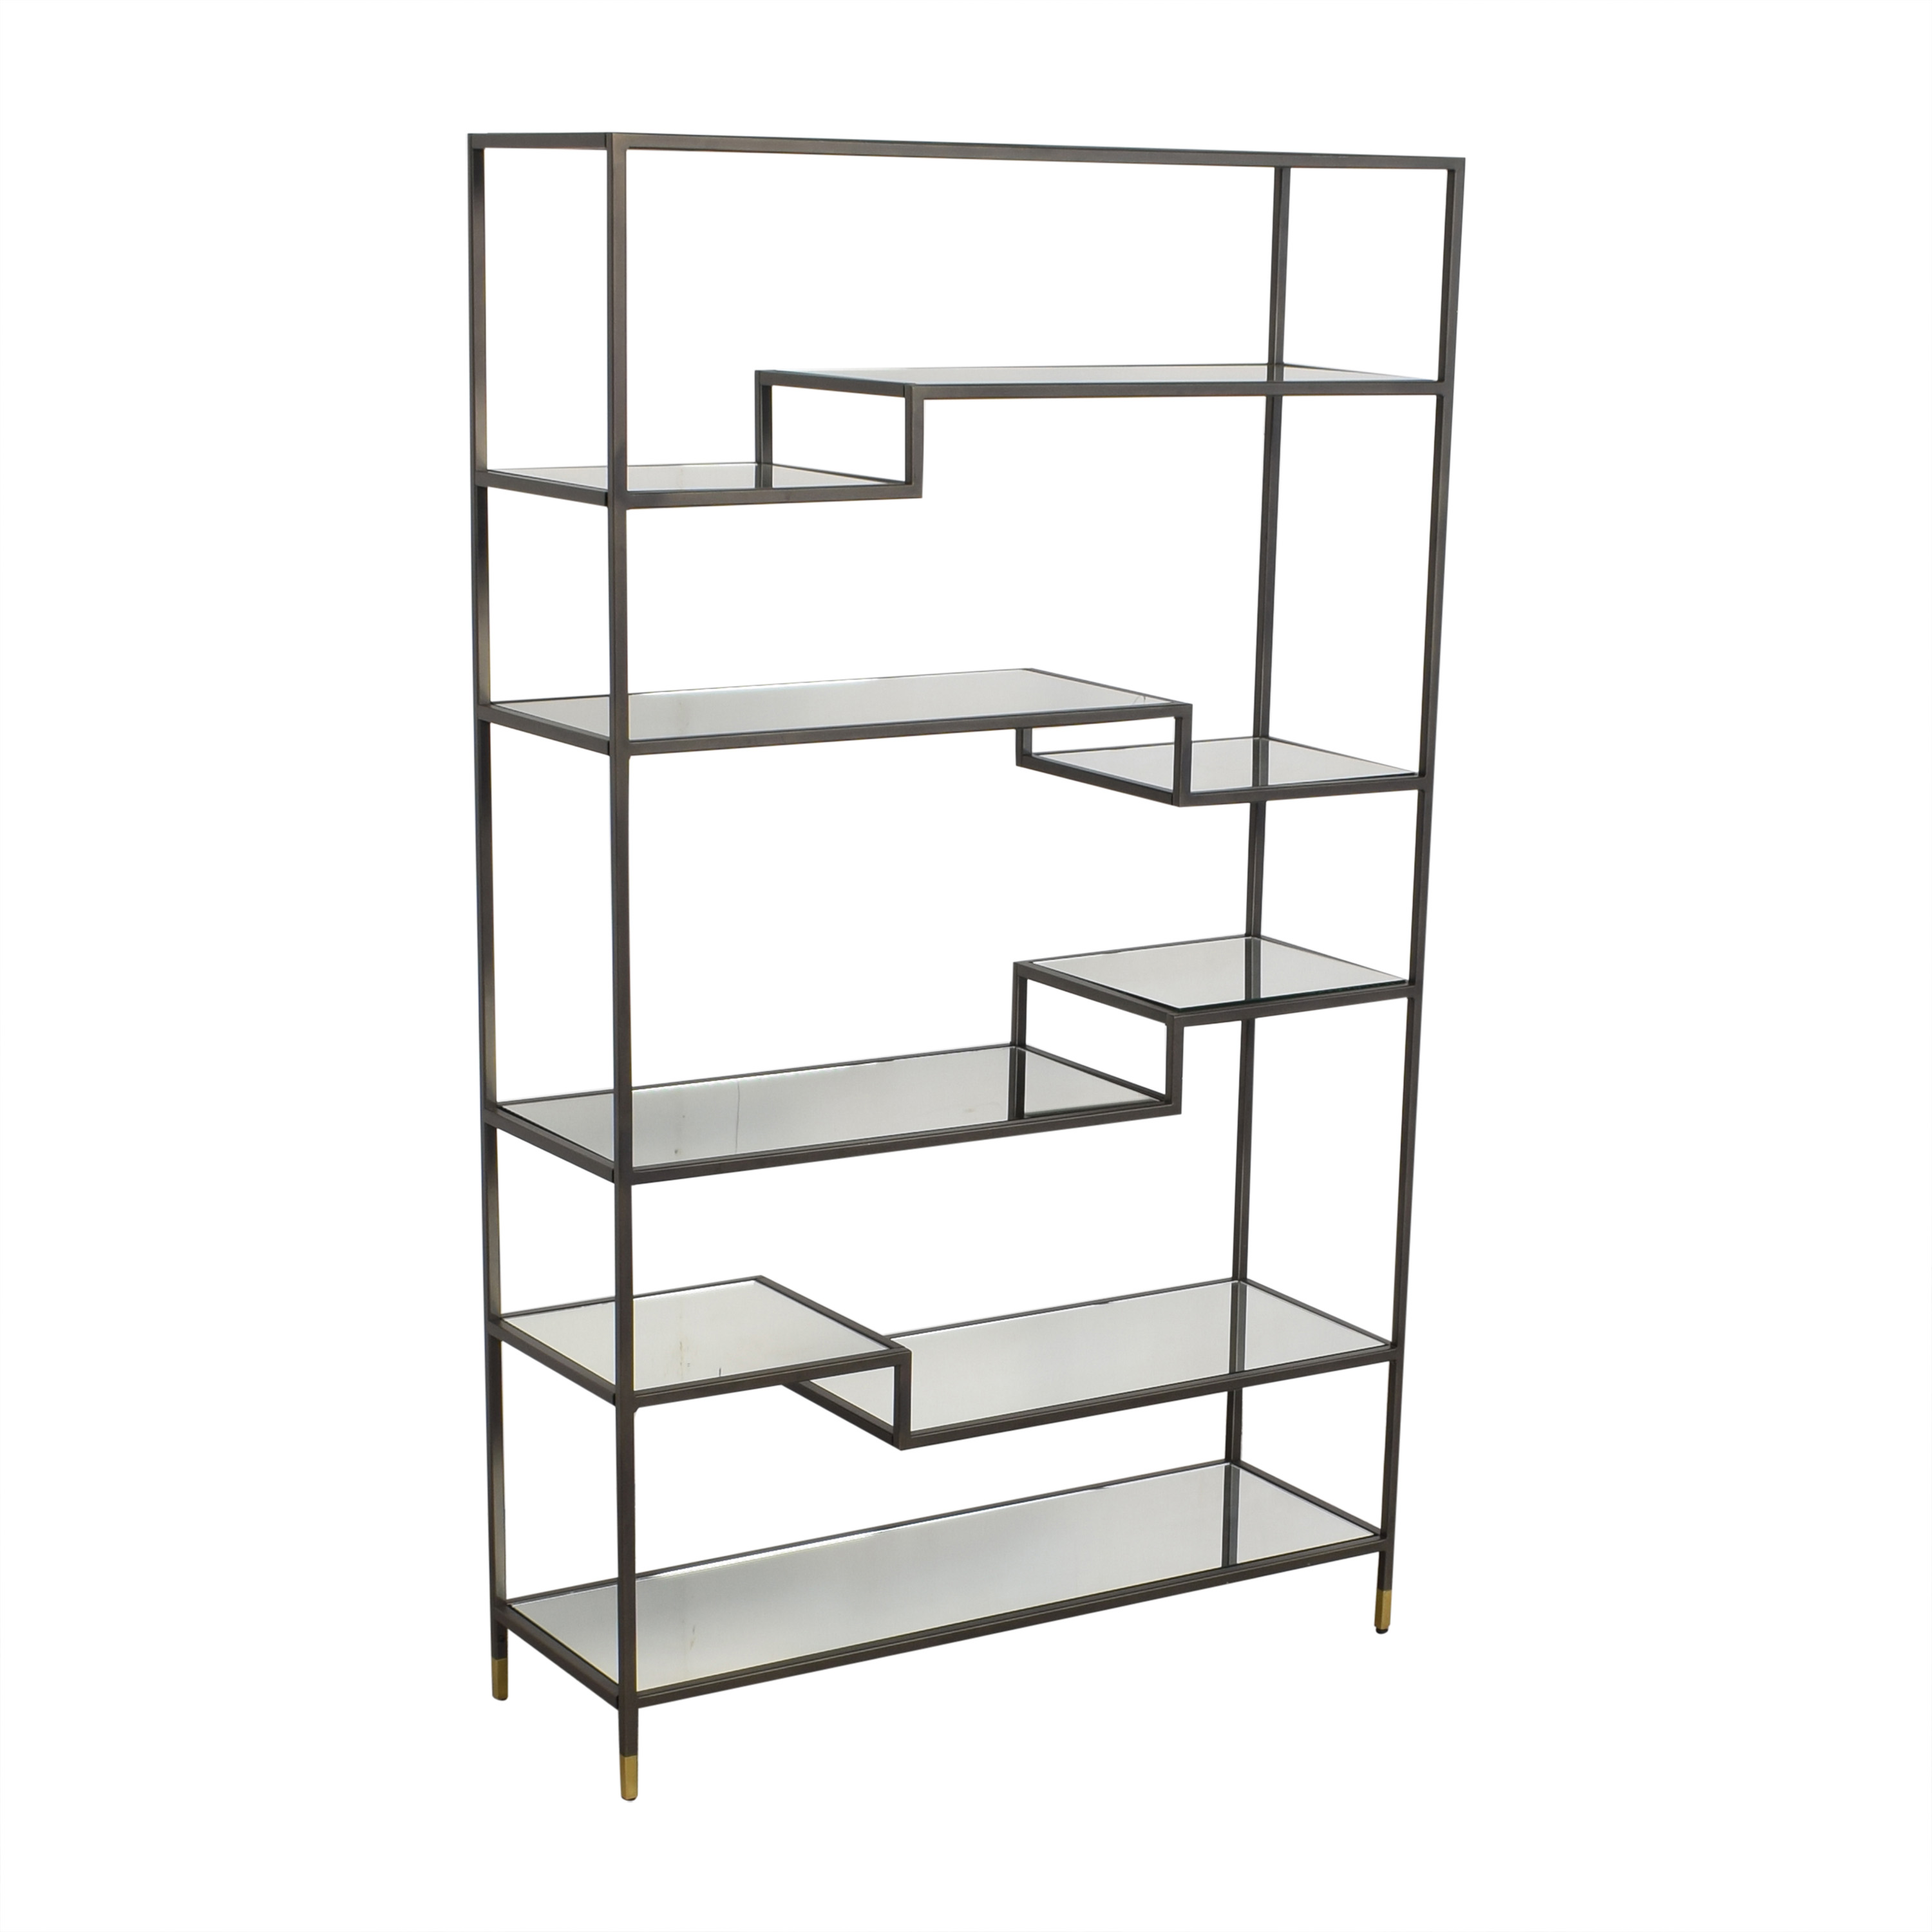 West Elm West Elm Tiered Tower Bookshelf nj